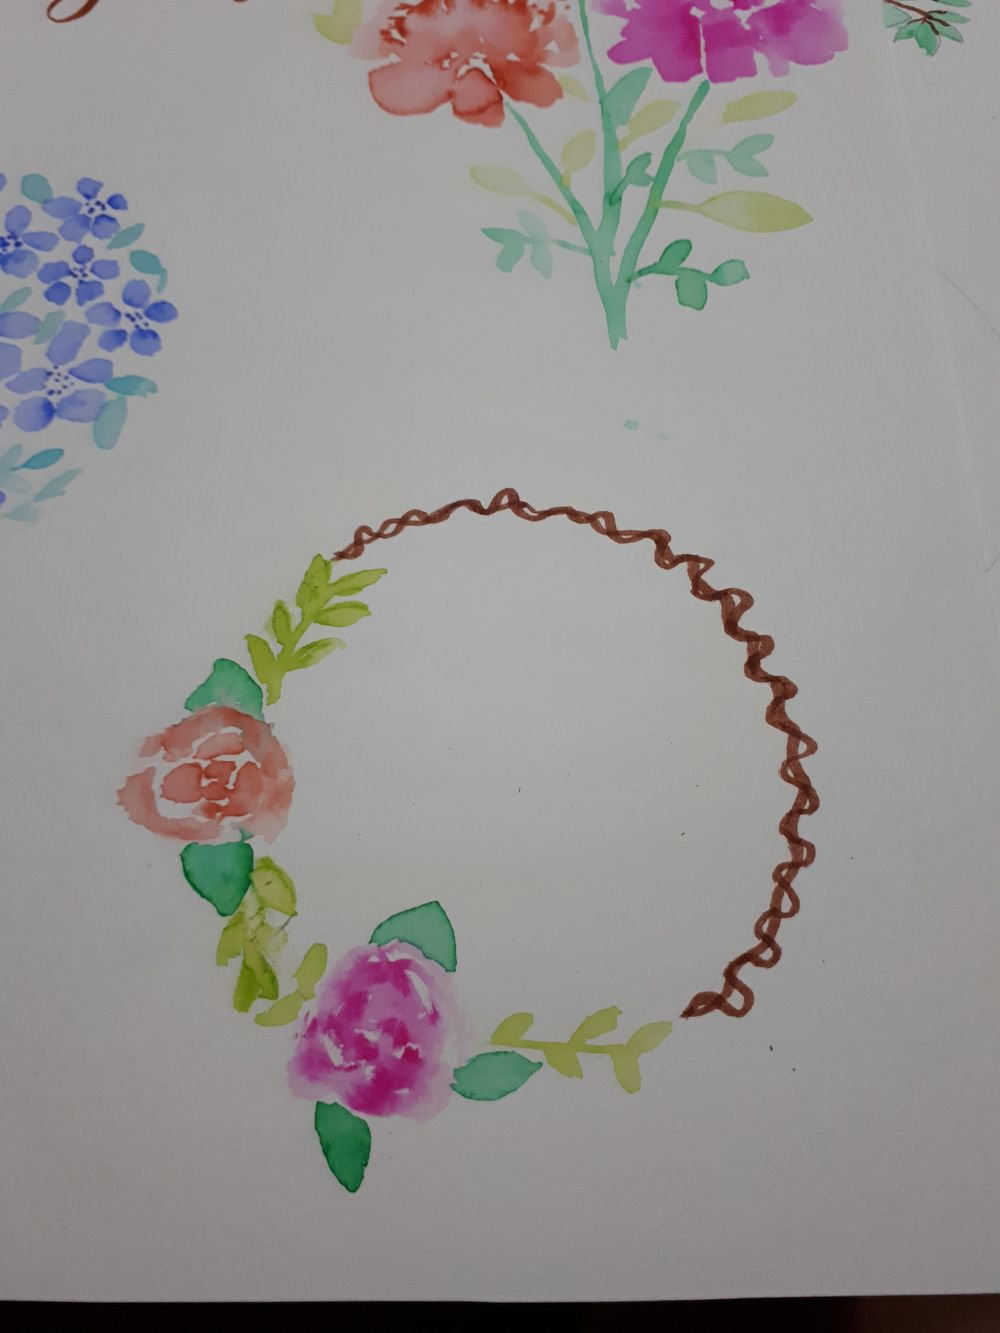 Brush Pen Loose Florals Watercolor Painting Trial - image 3 - student project